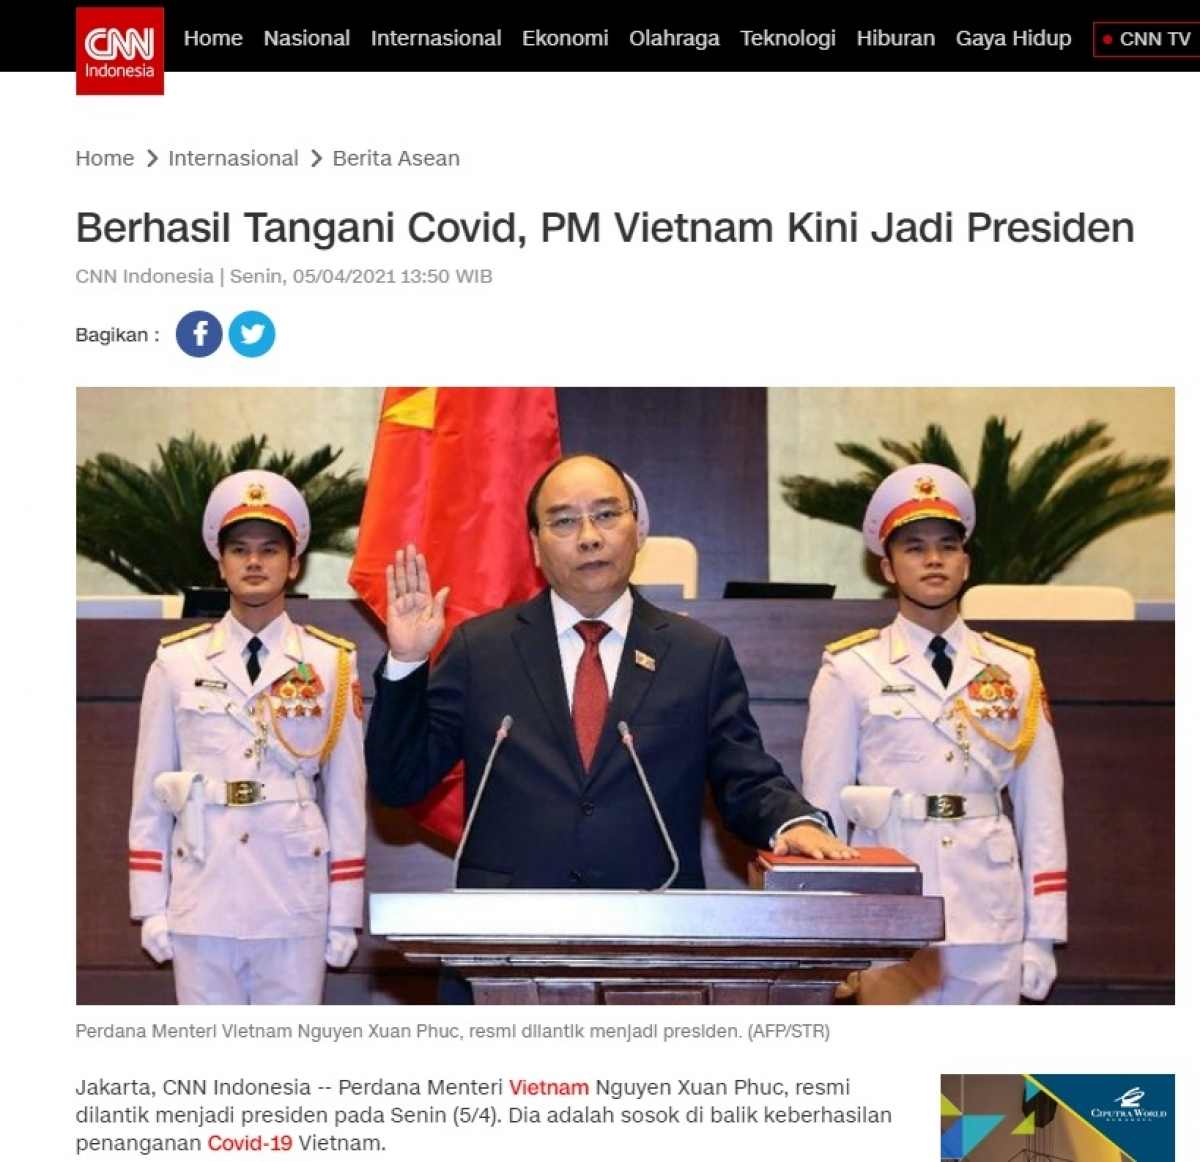 The article is posted on CNN Indonesia